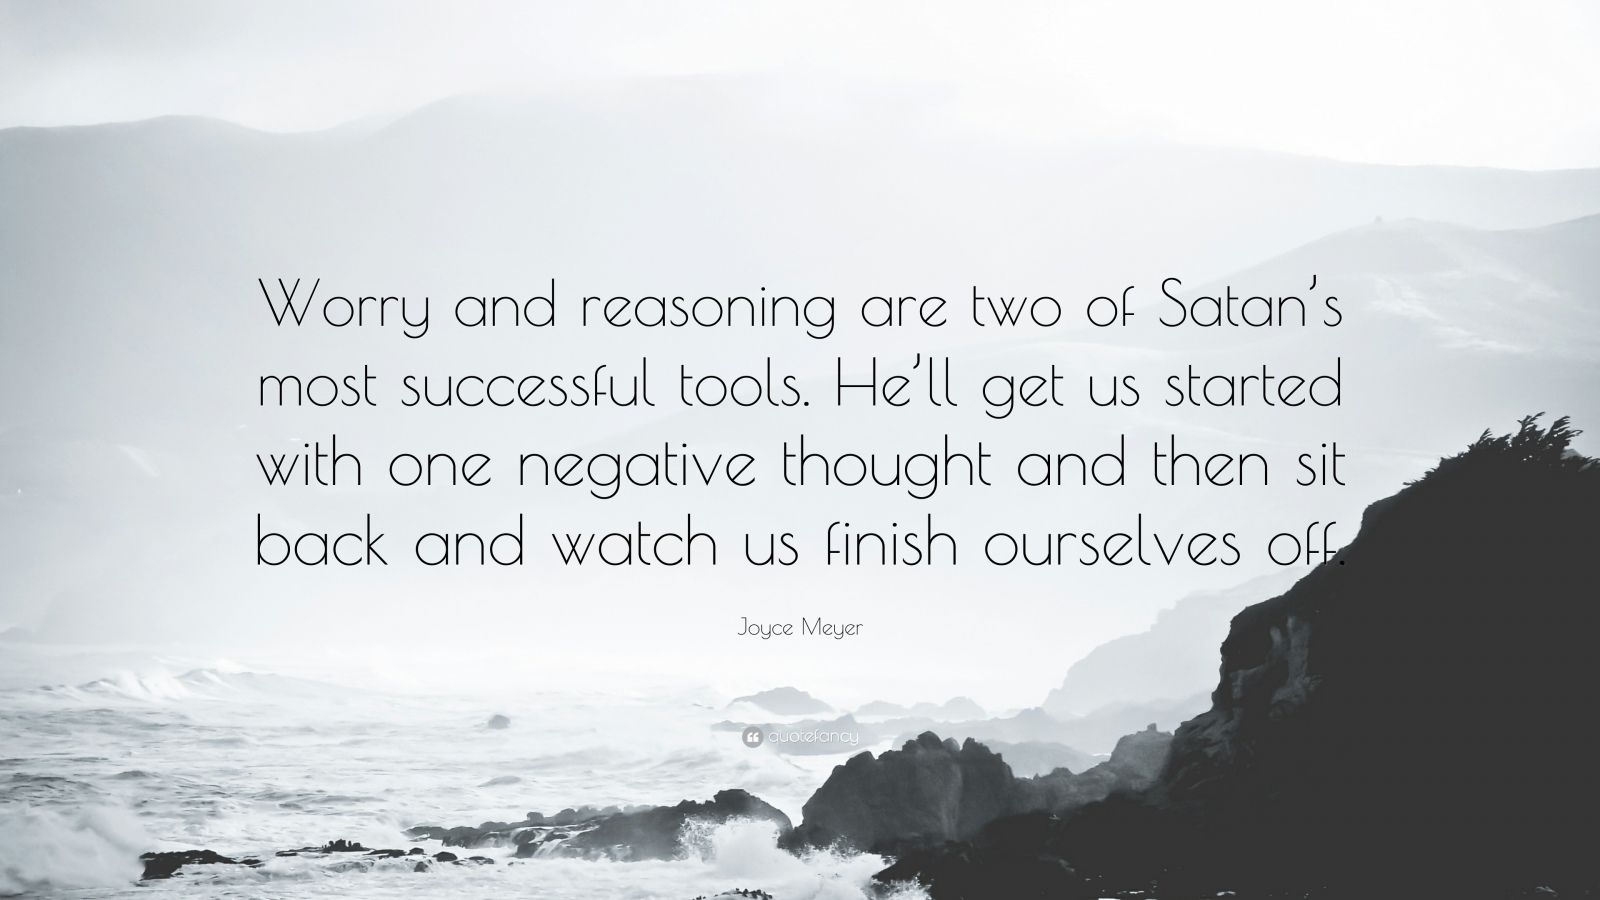 """Joyce Meyer Quote: """"Worry and reasoning are two of Satan's most successful tools. He'll get us started with one negative thought and then sit back and watch us finish ourselves off."""""""